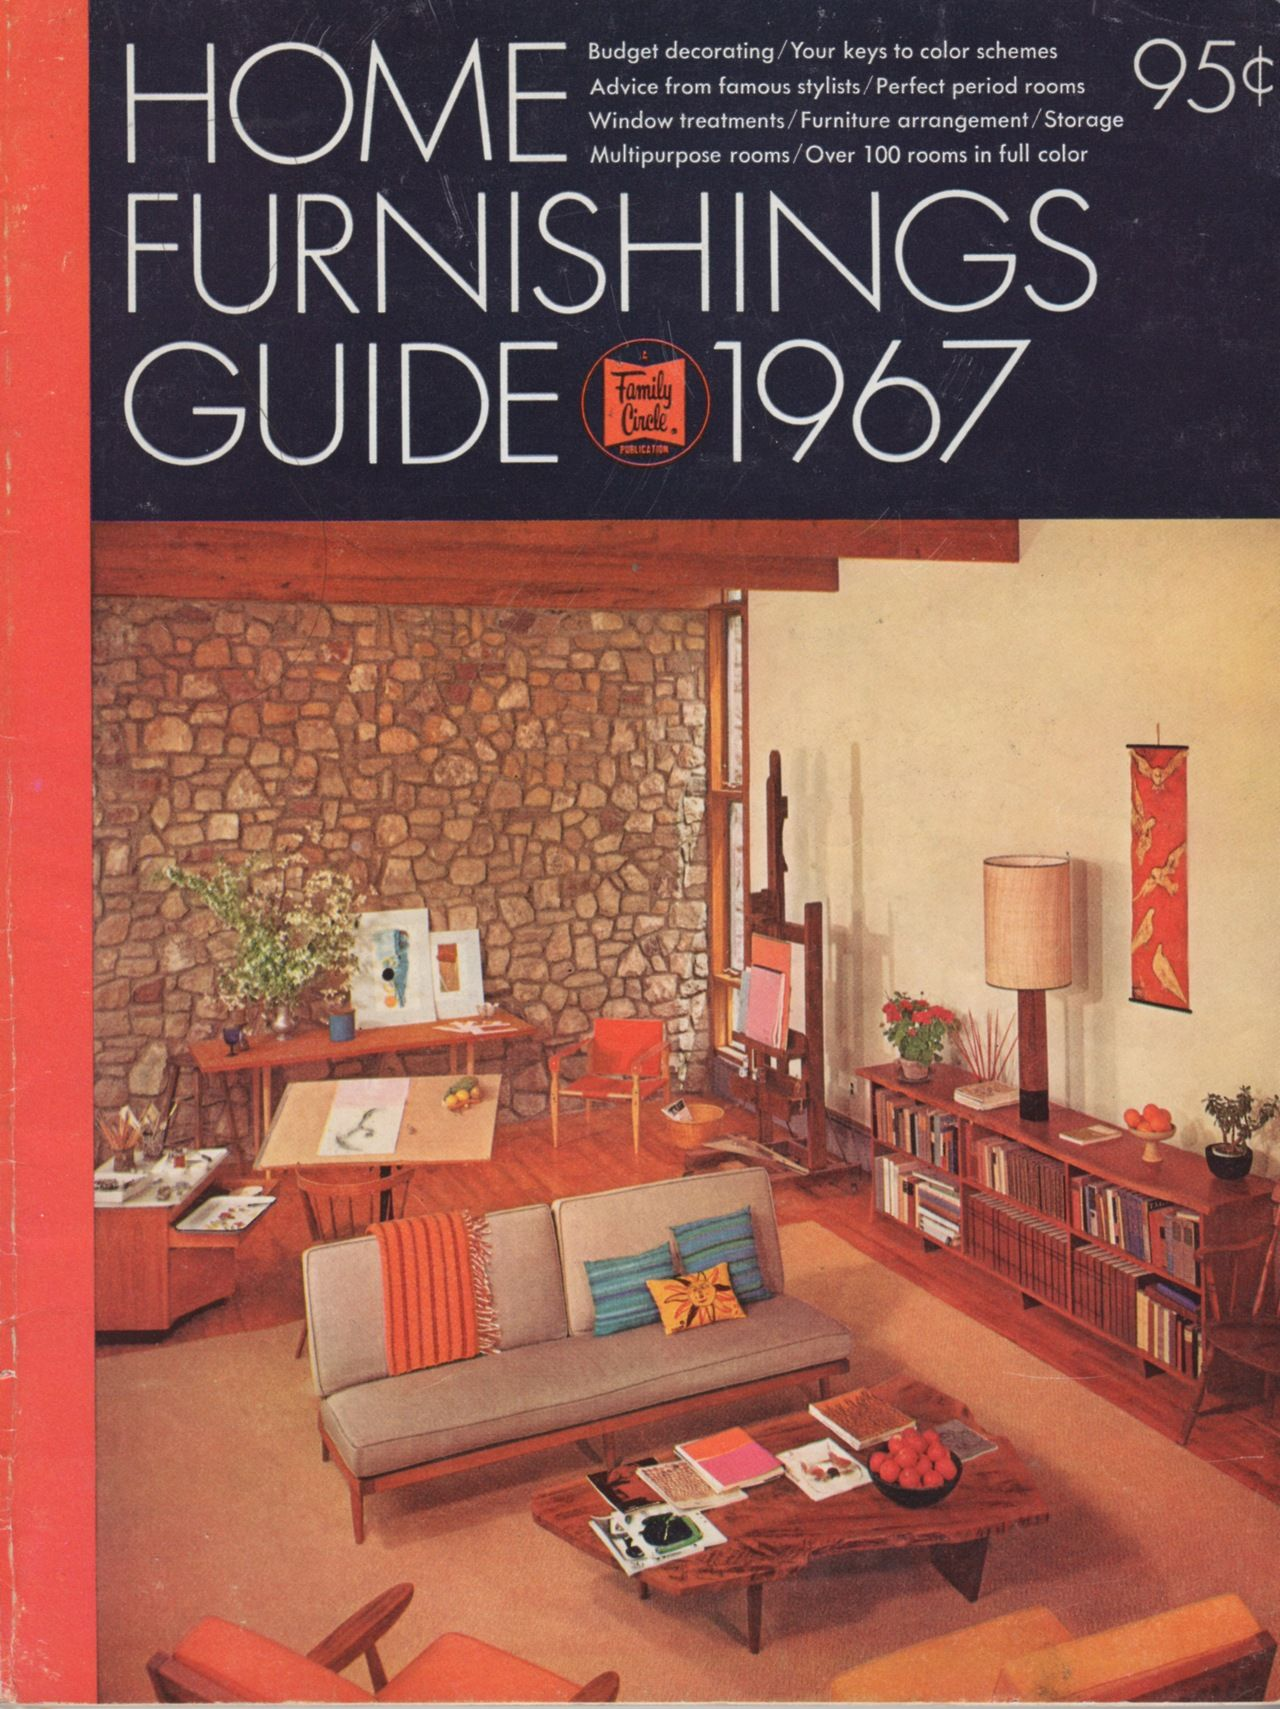 Home Furnishings Guide 1967 The Family Circle 1966